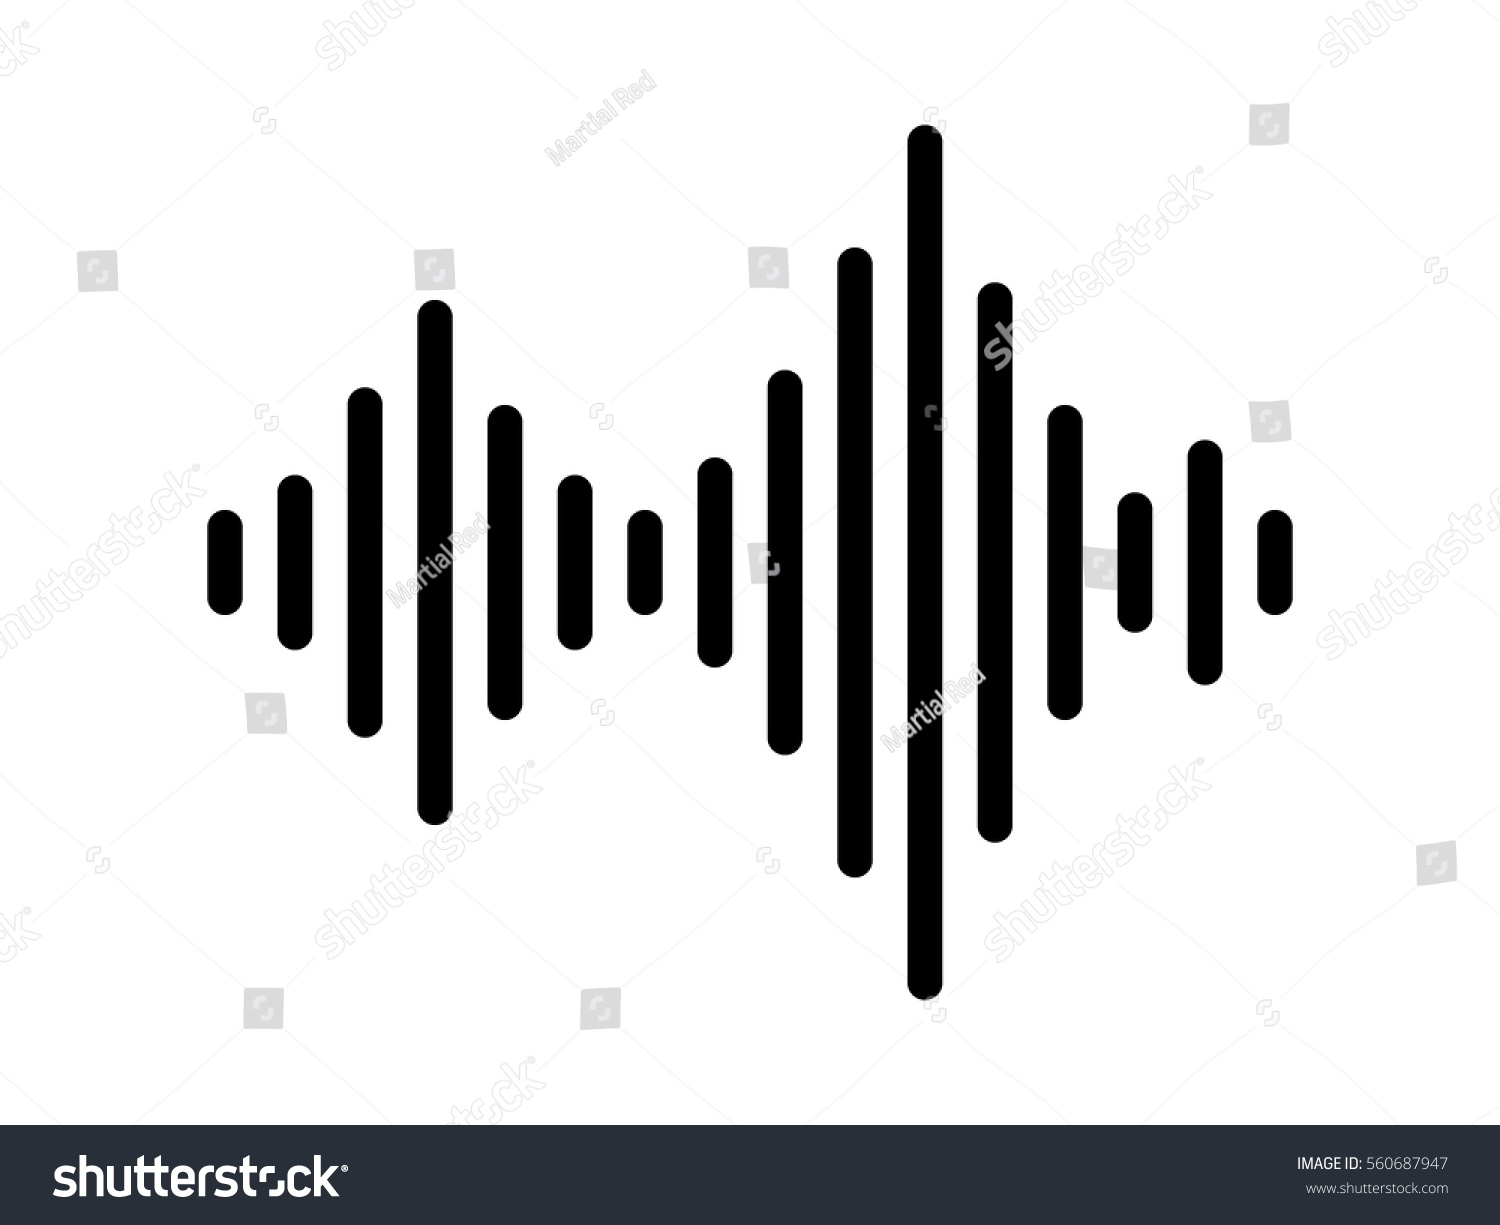 Acoustic Sound Waves : Sound audio wave soundwave line art stock vector